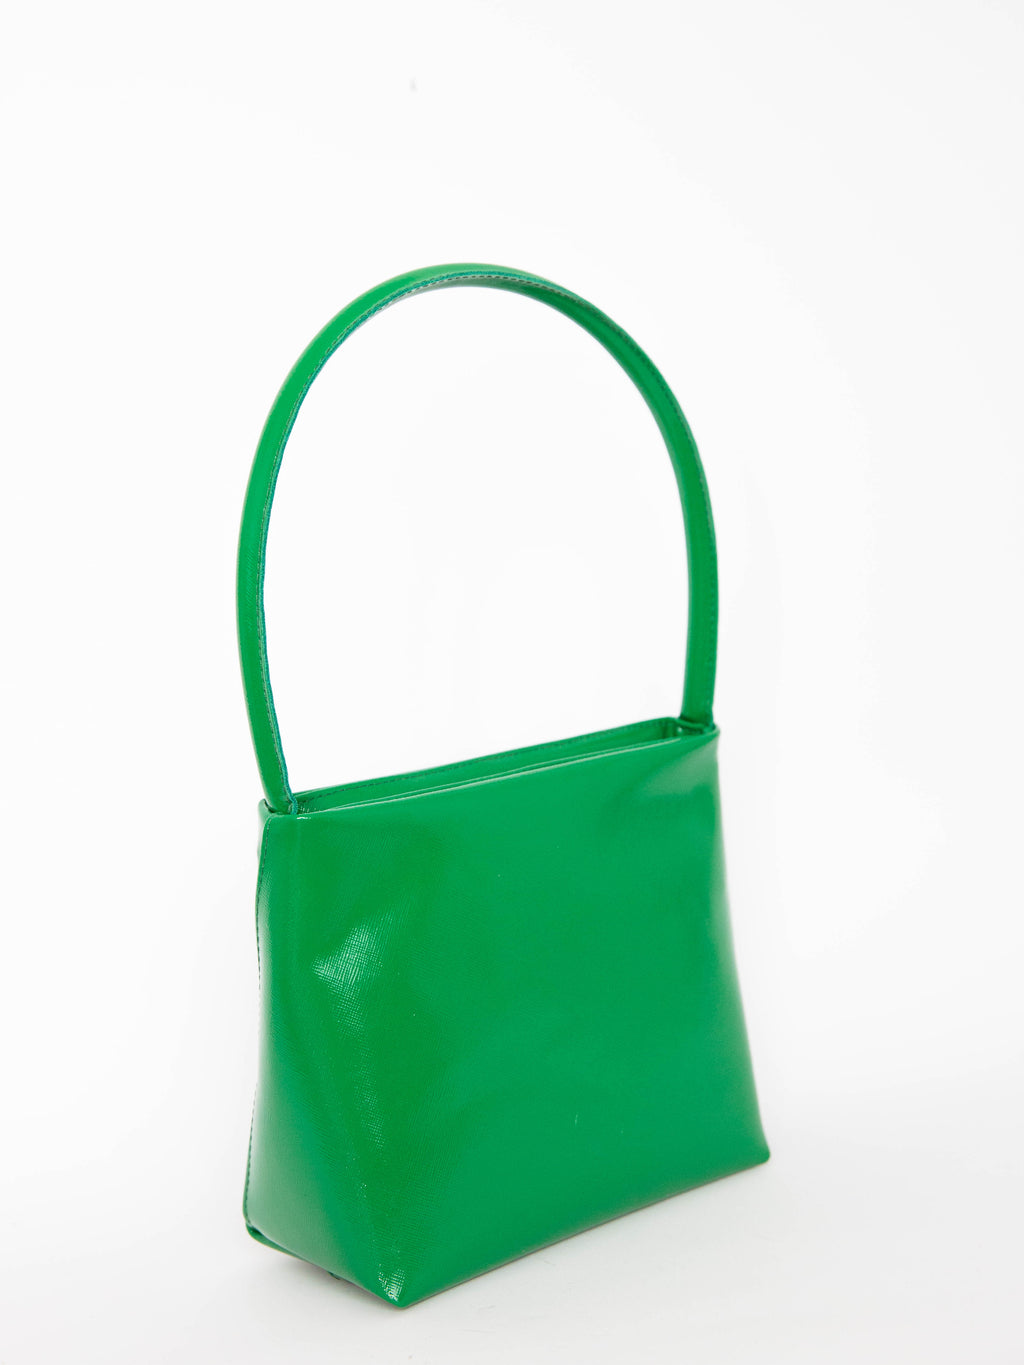 Little Ombra - Kelly Green Patent